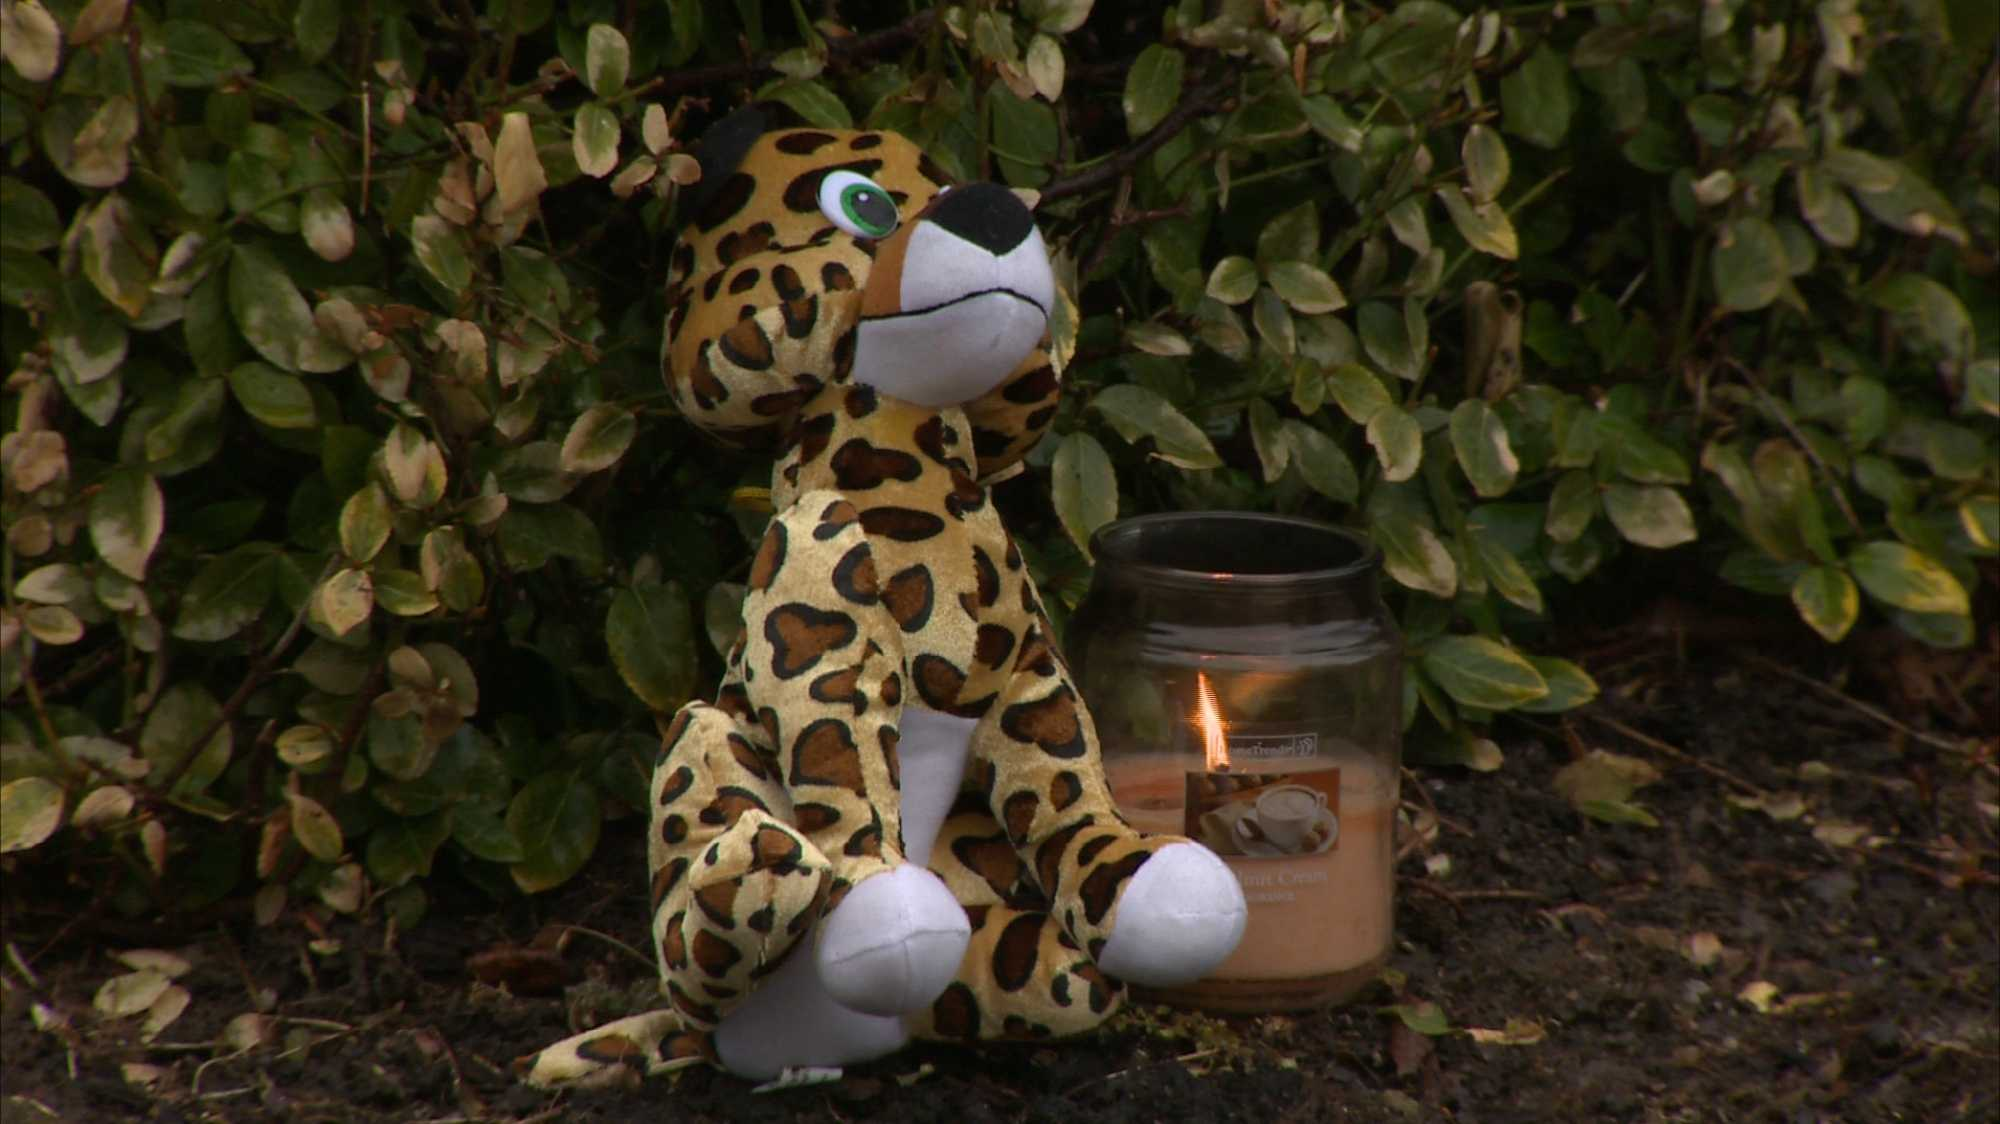 A small candle and a stuffed animal were placed outside the Schlemmer family's home in McCandless.